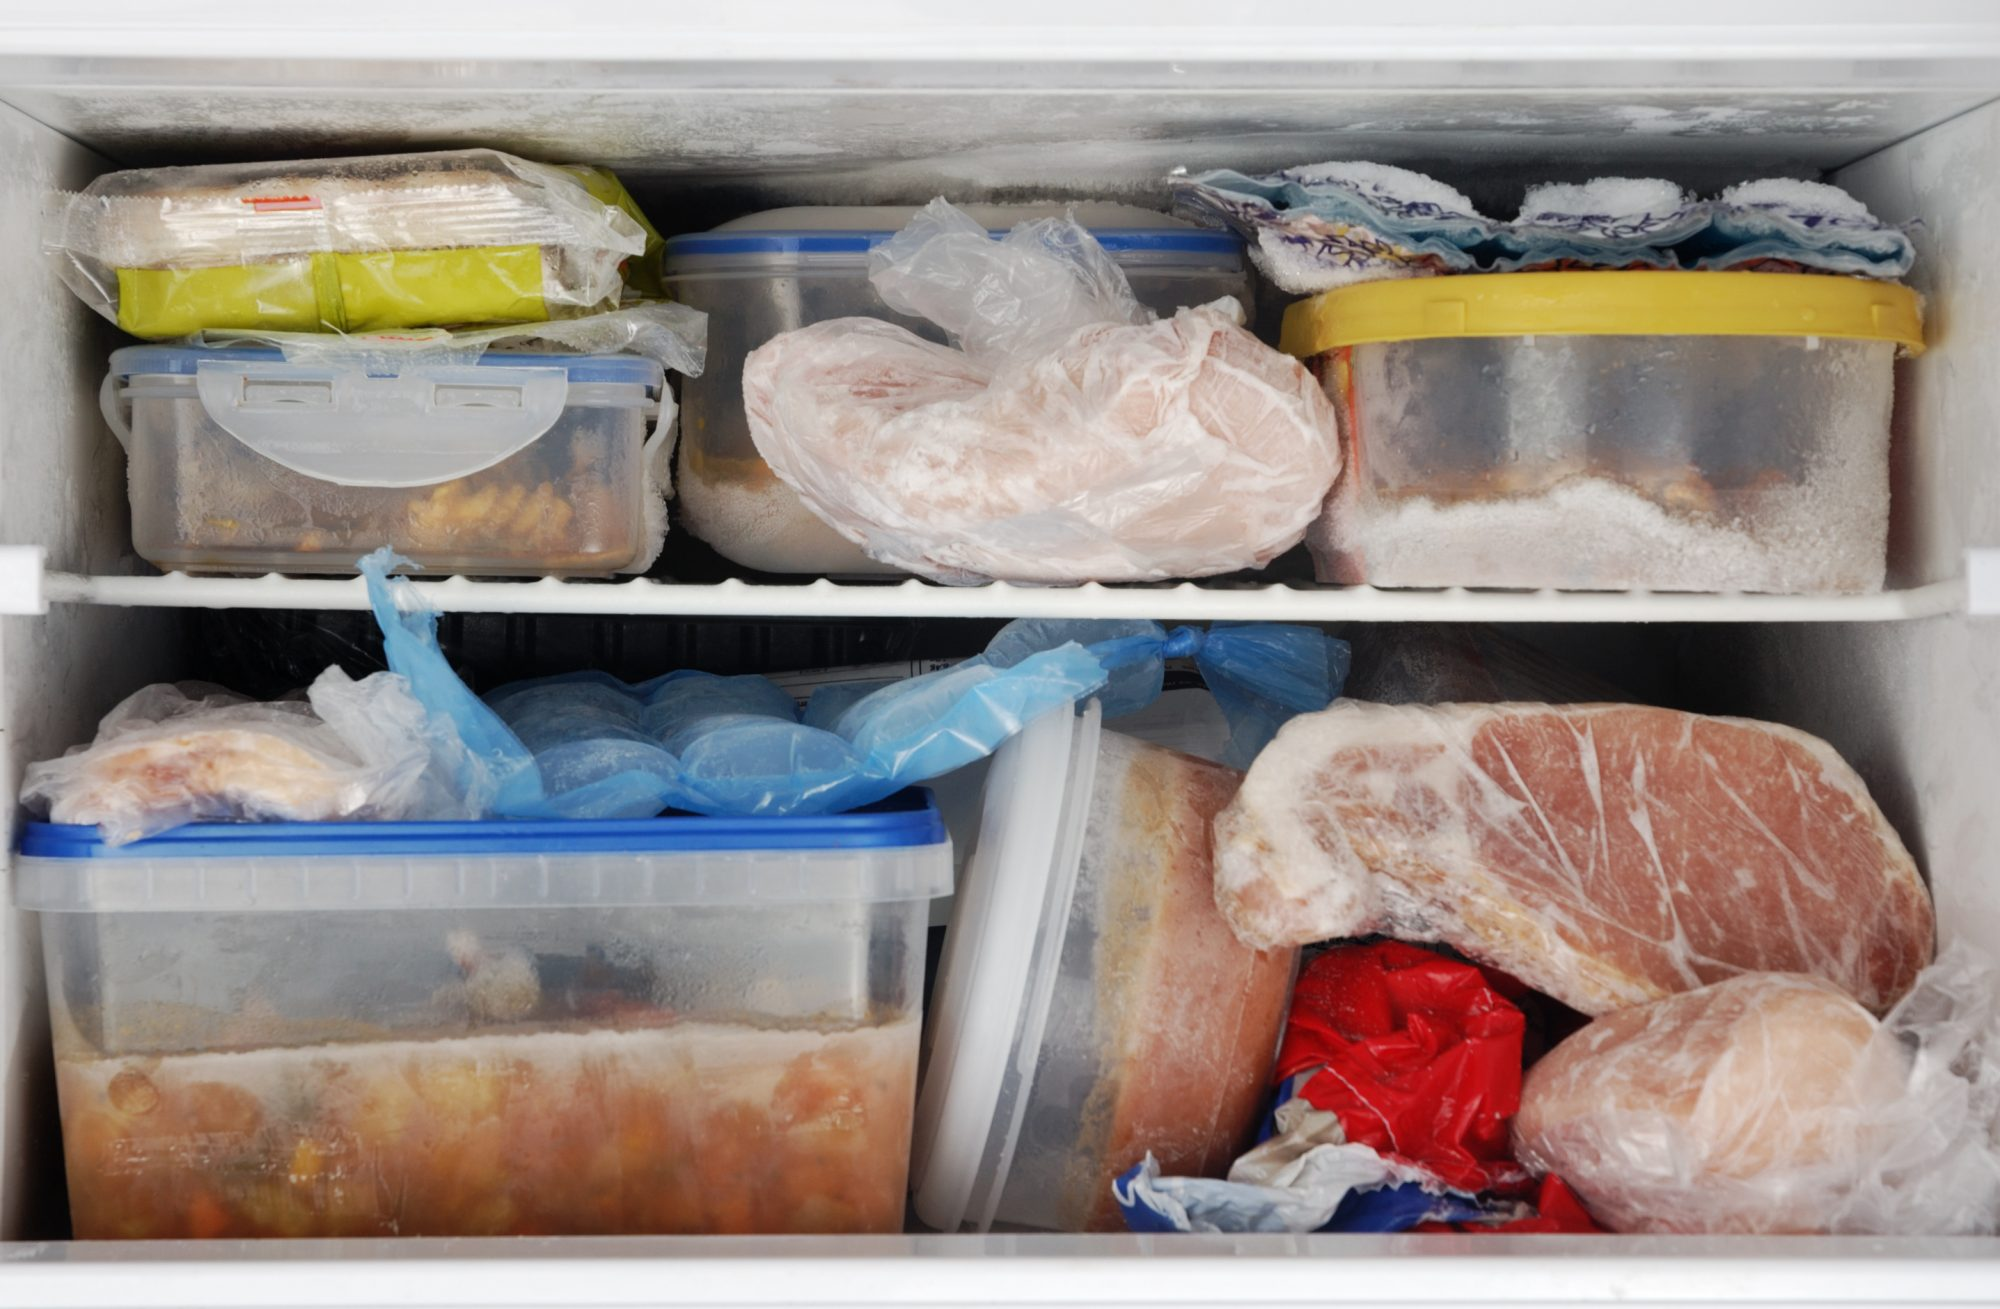 getty-freezer-image